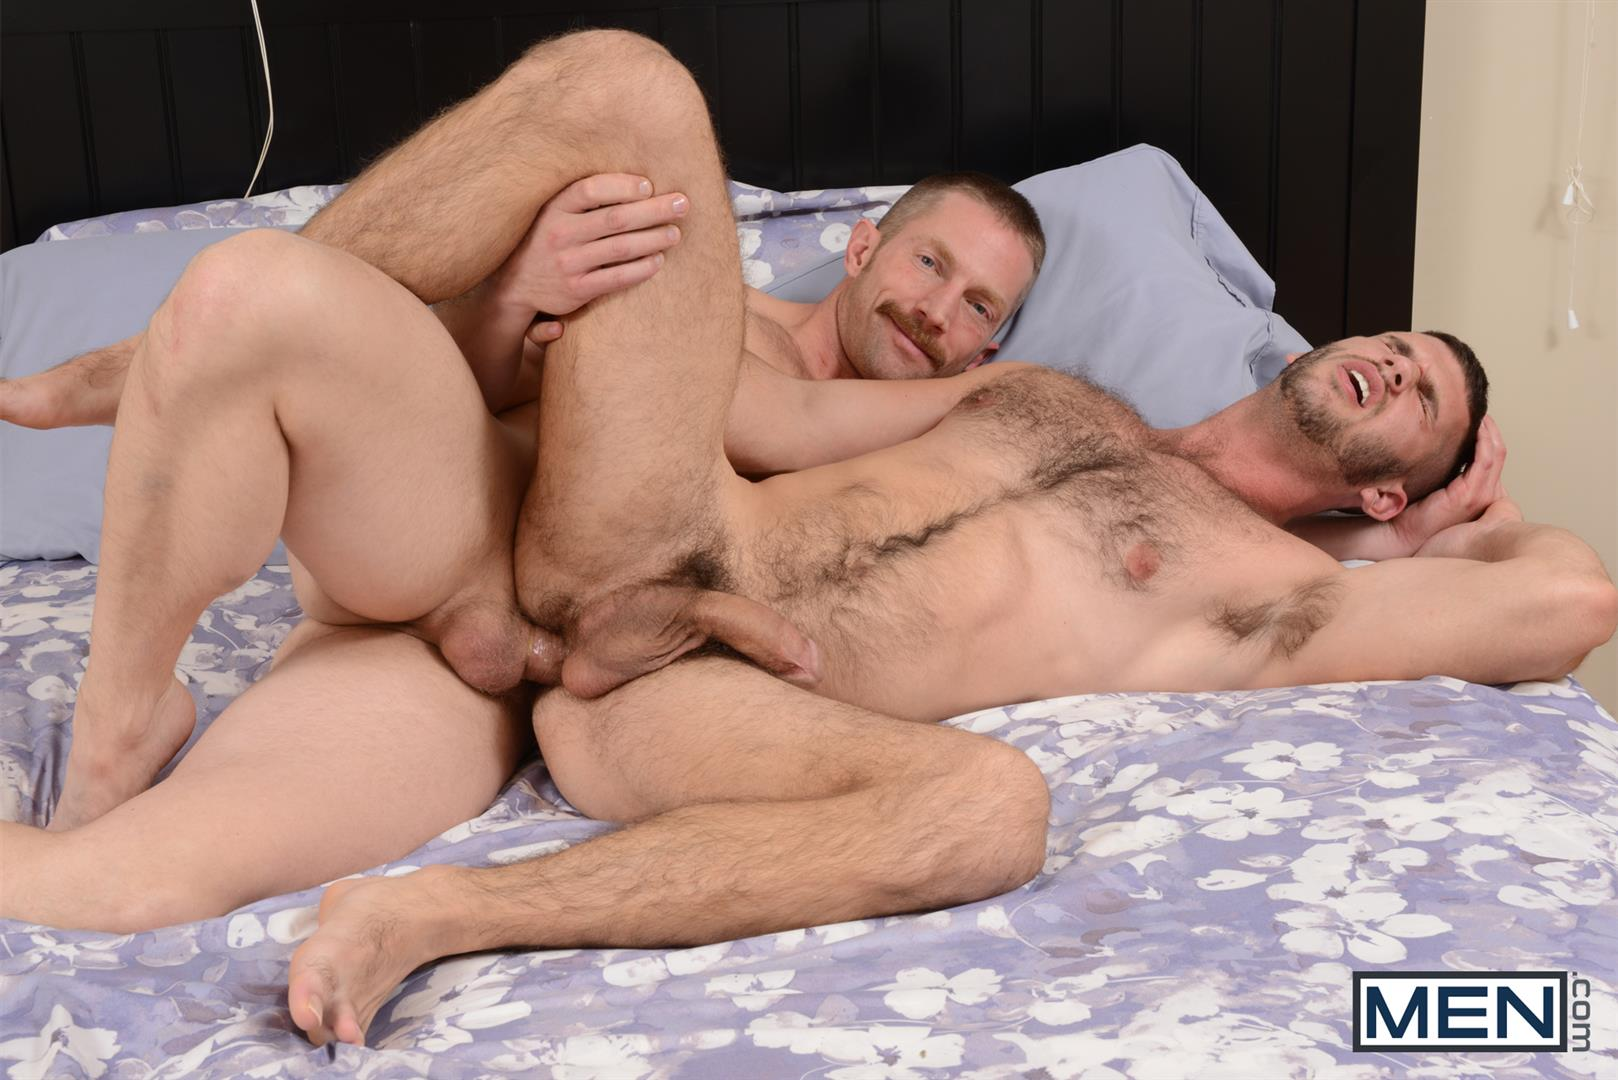 gay cum foreskin video tumblr